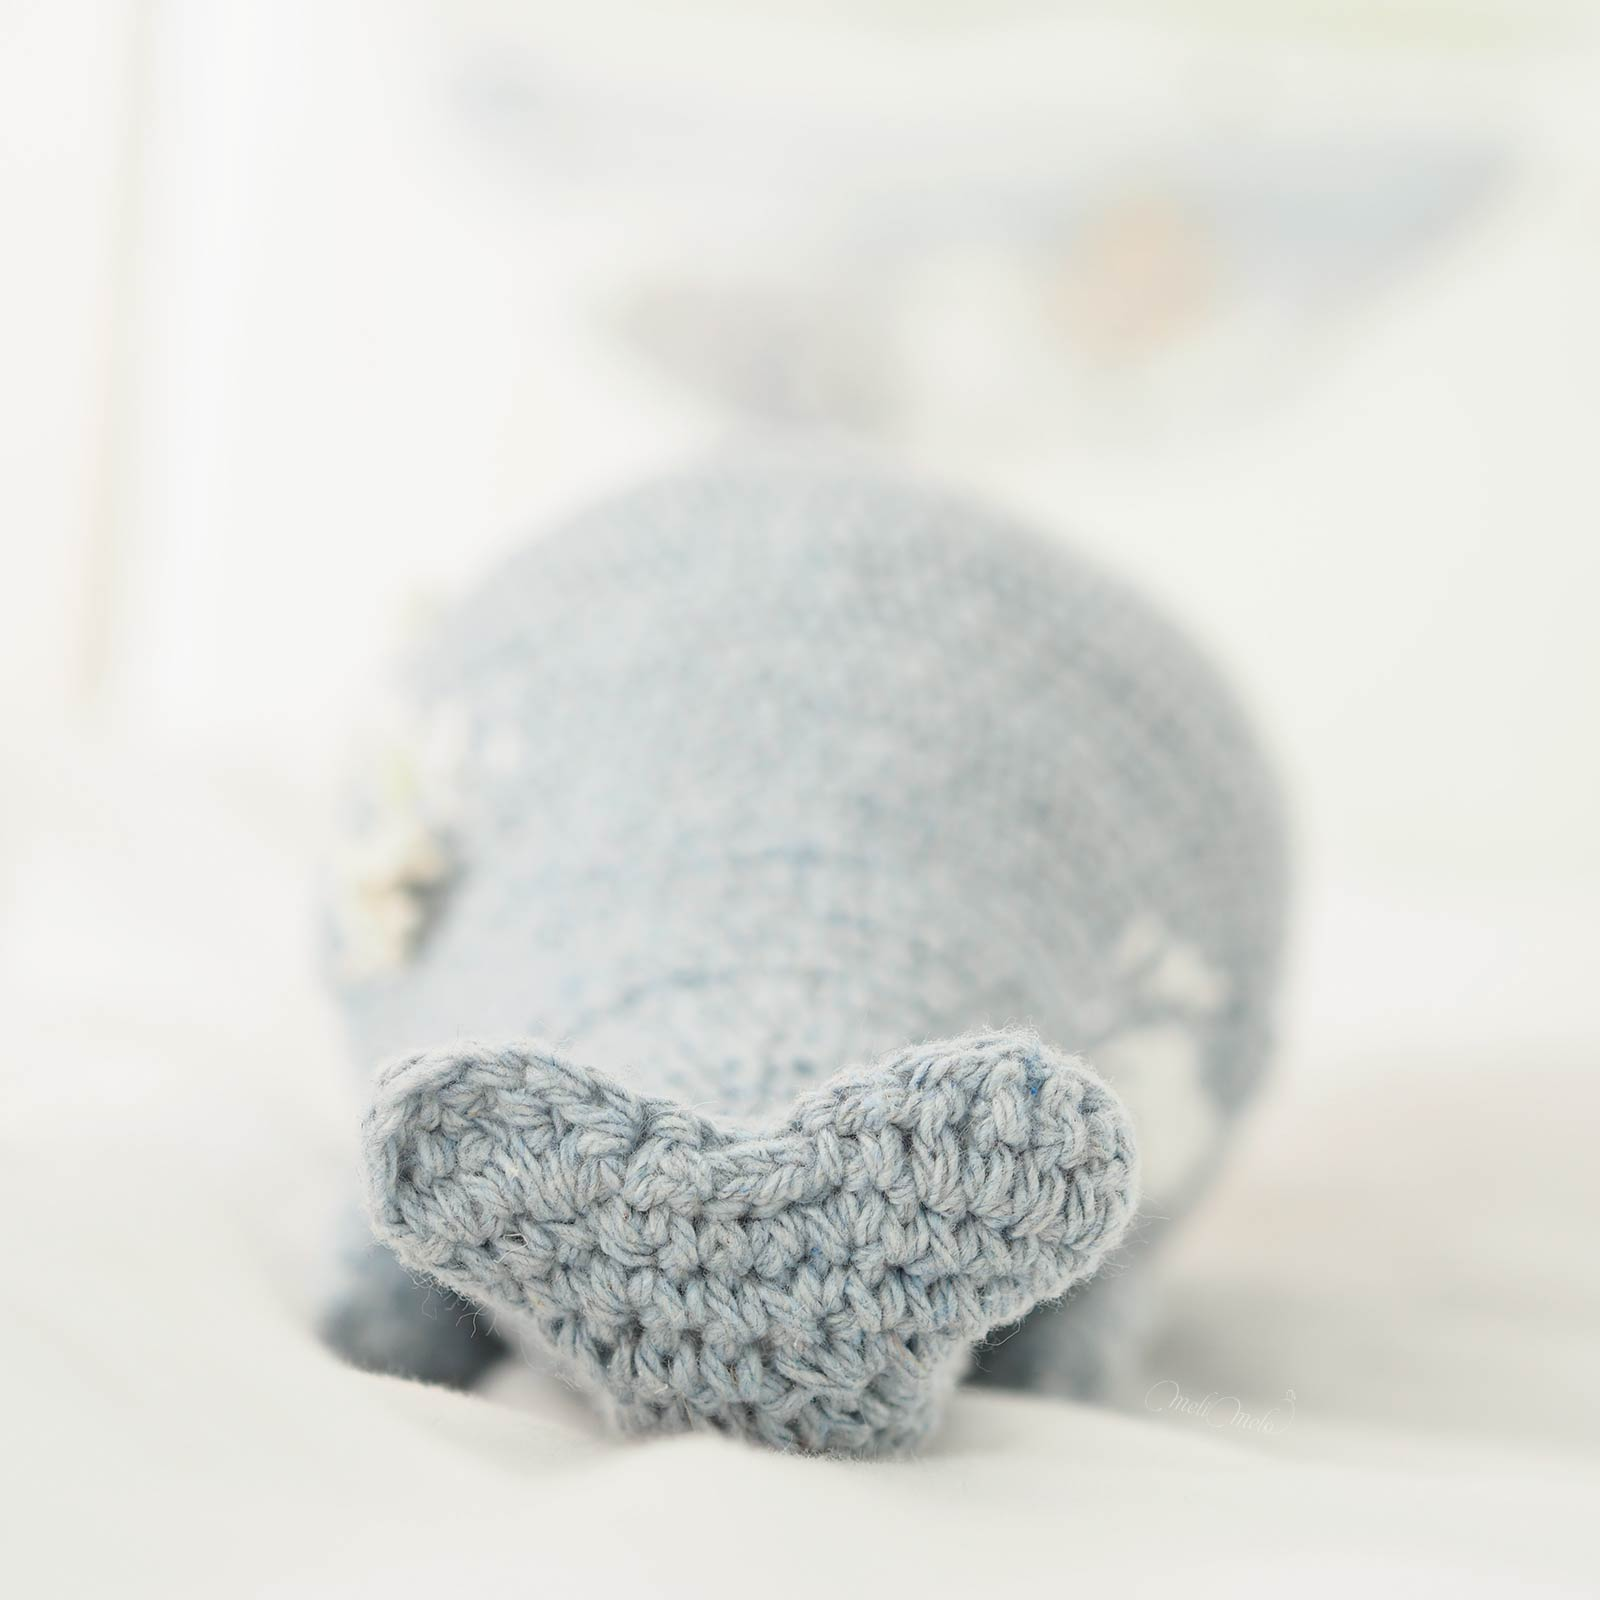 queue-baleine-doudou-crochet-sealife-laboutiquedemelimelo